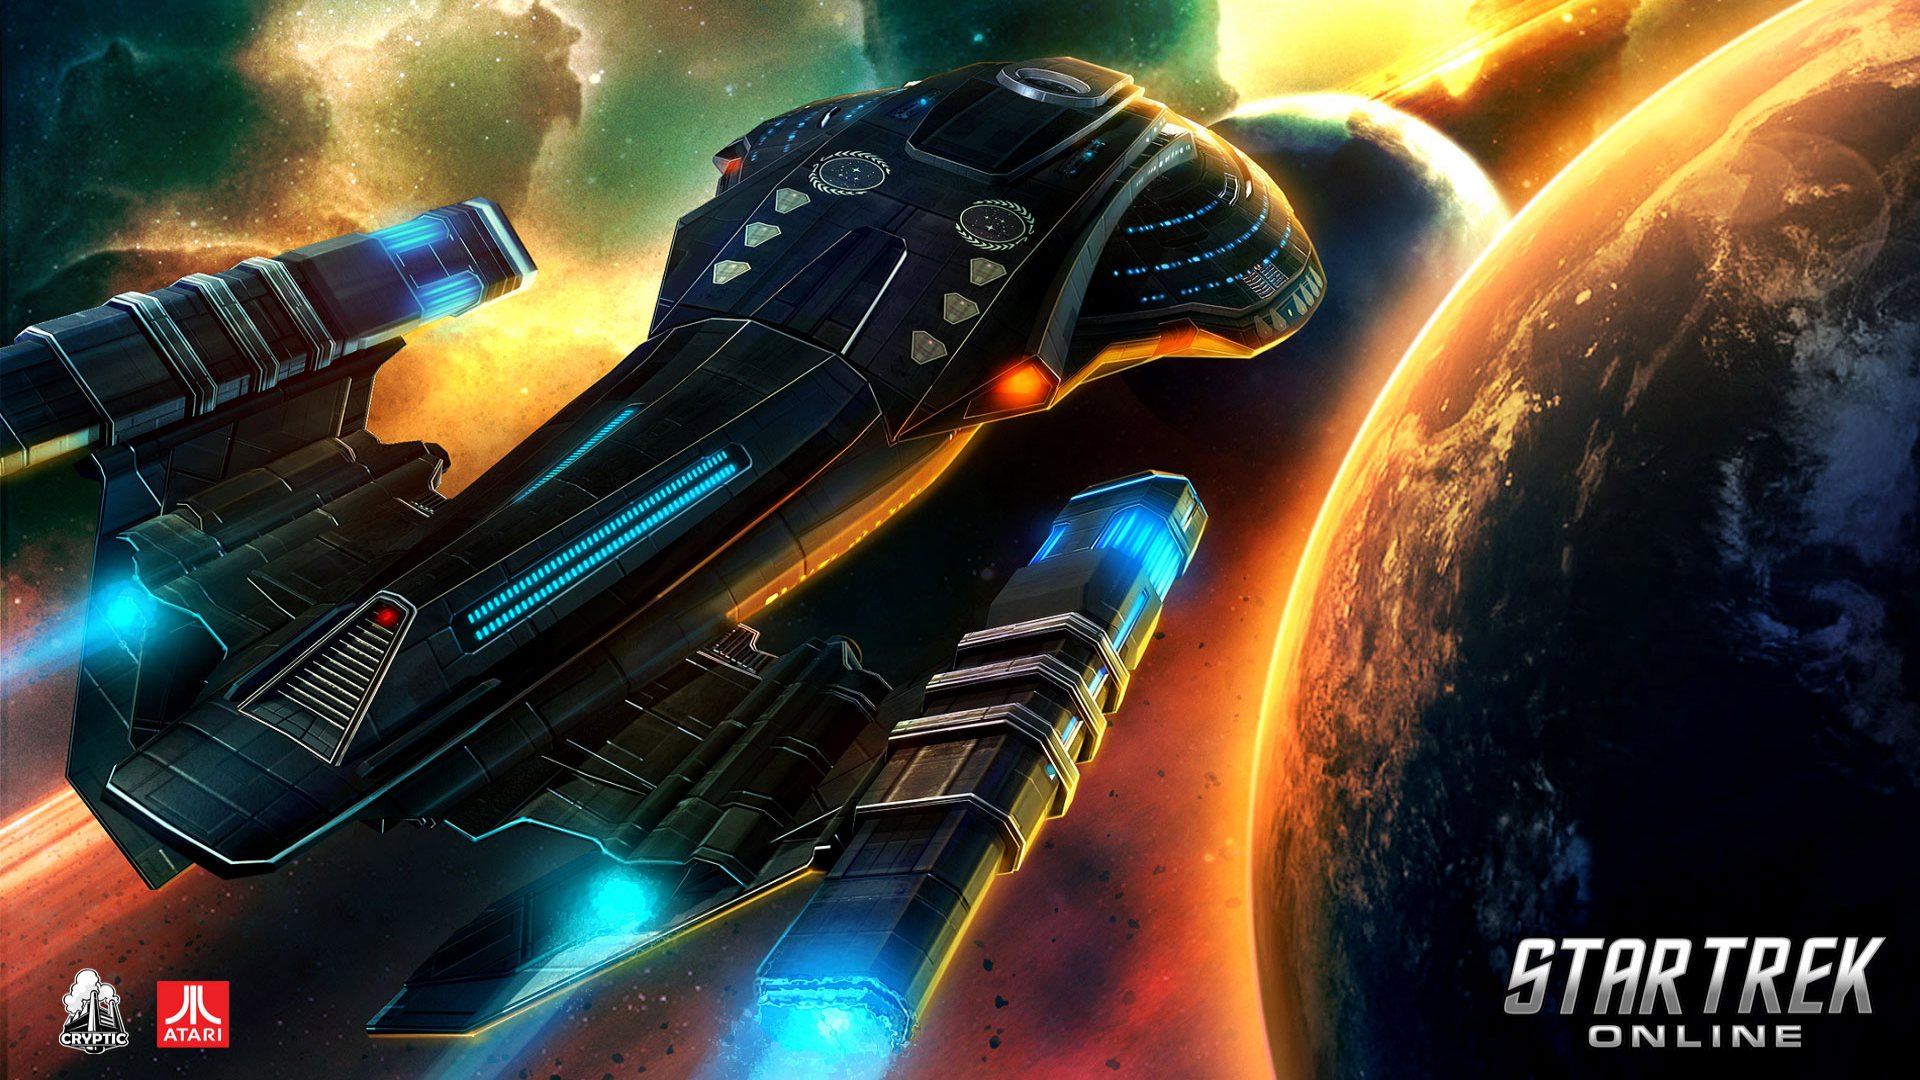 Star trek online announced for console release senshudo - Star trek online console ...